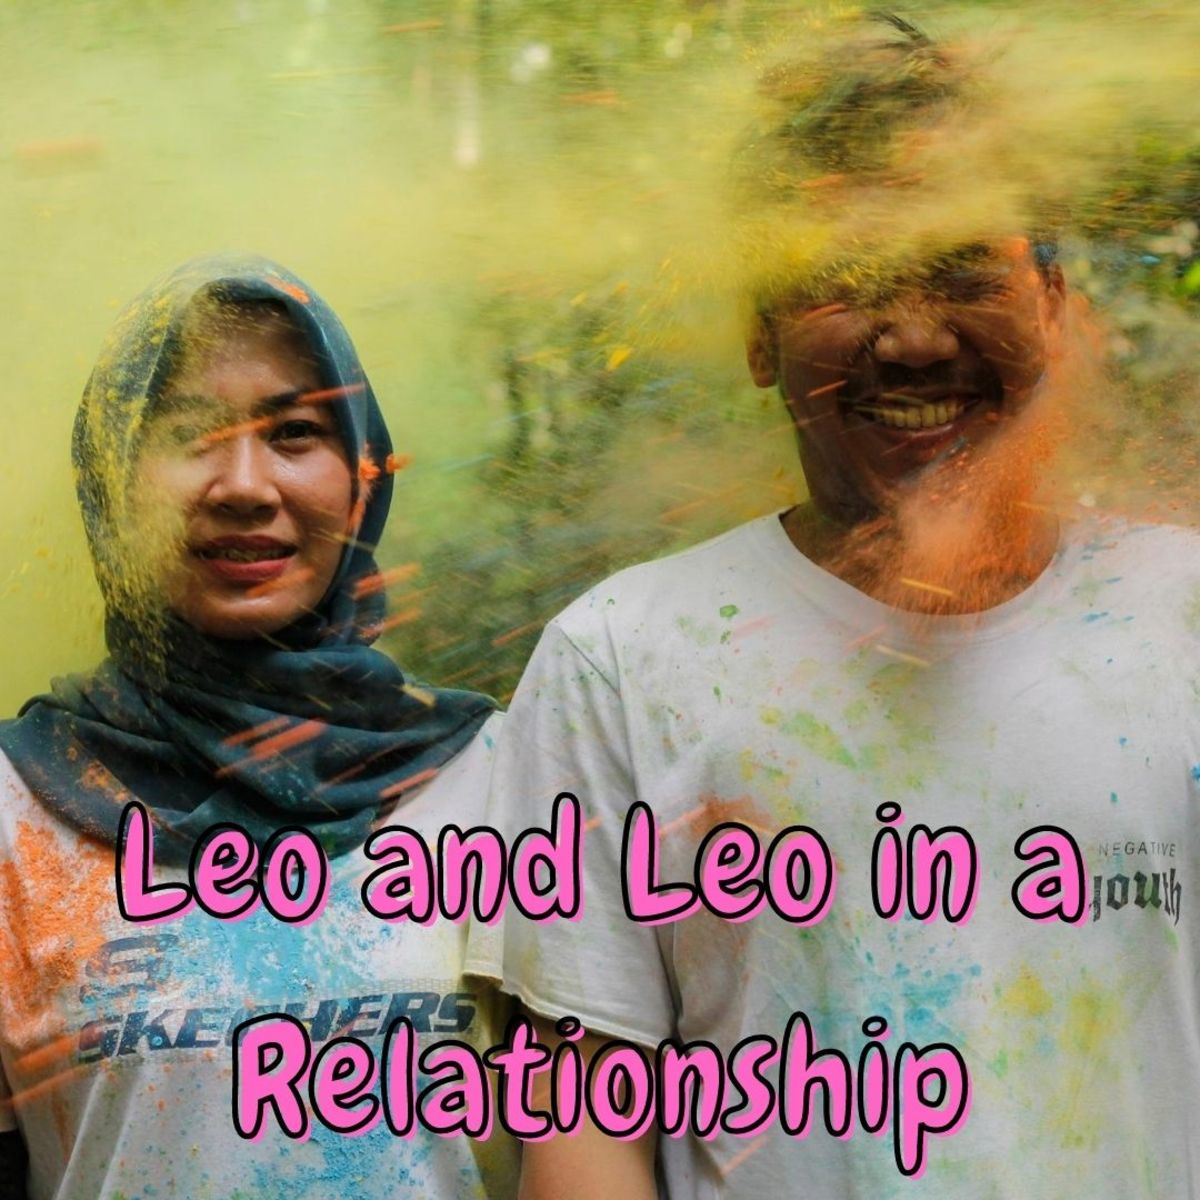 Leo and Leo make for a bright and passionate relationship.